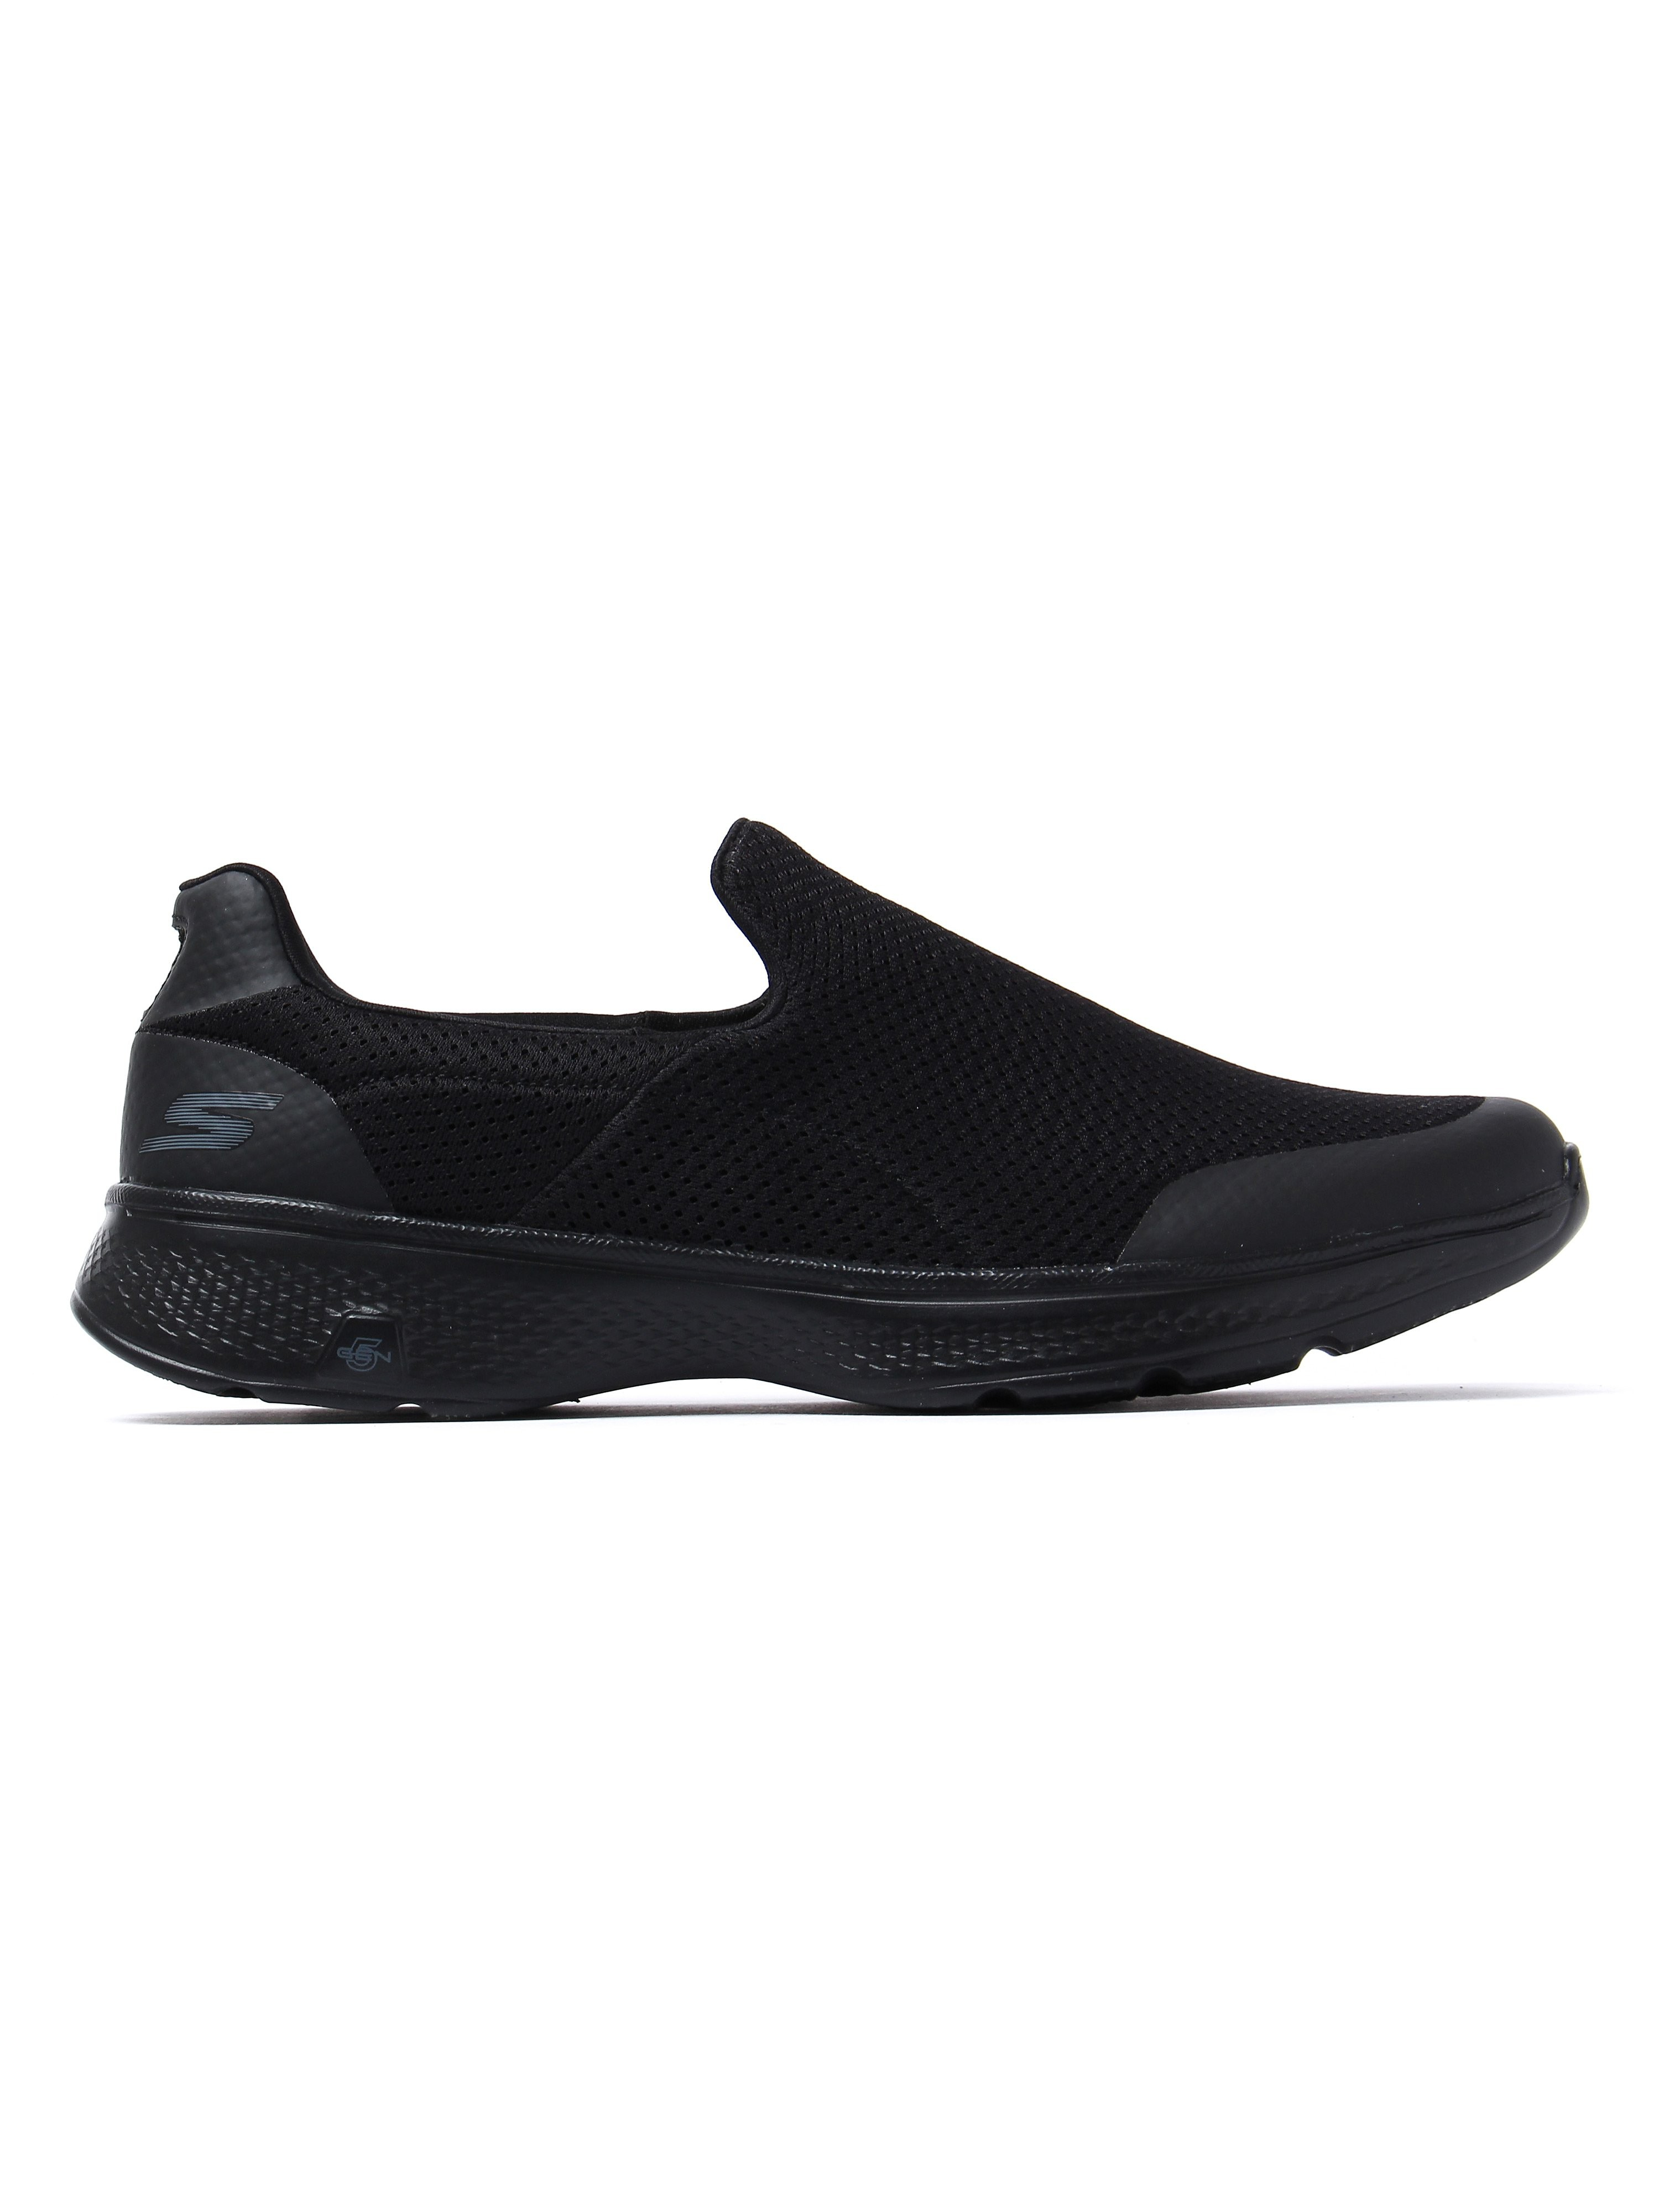 Skechers Men's Go Walk 4 Incredible Trainers - Black